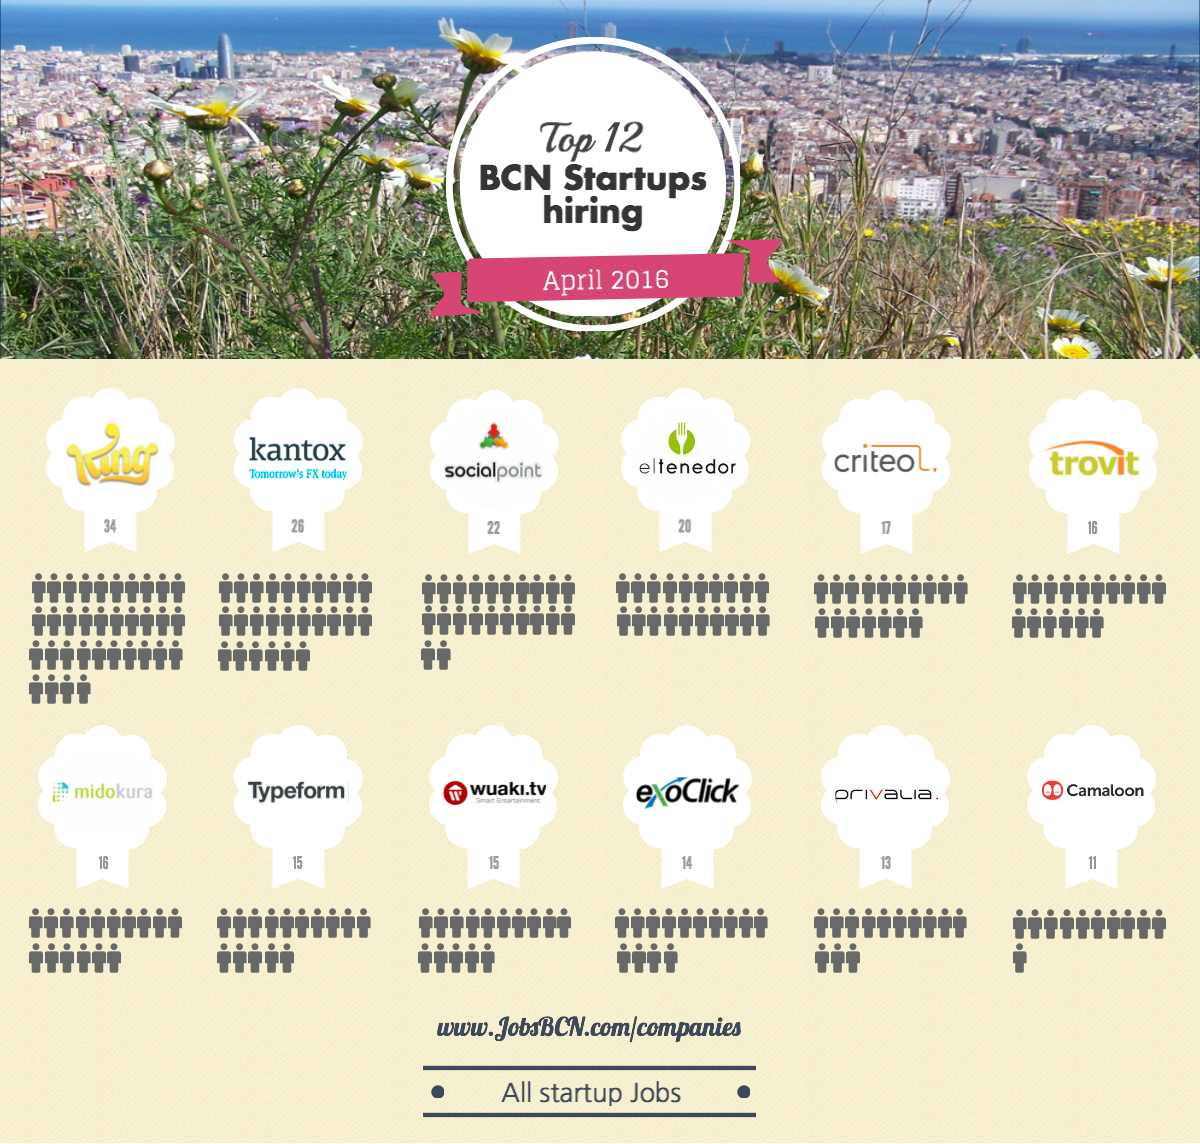 Top Startups Hiring in Barcelona – April 2016